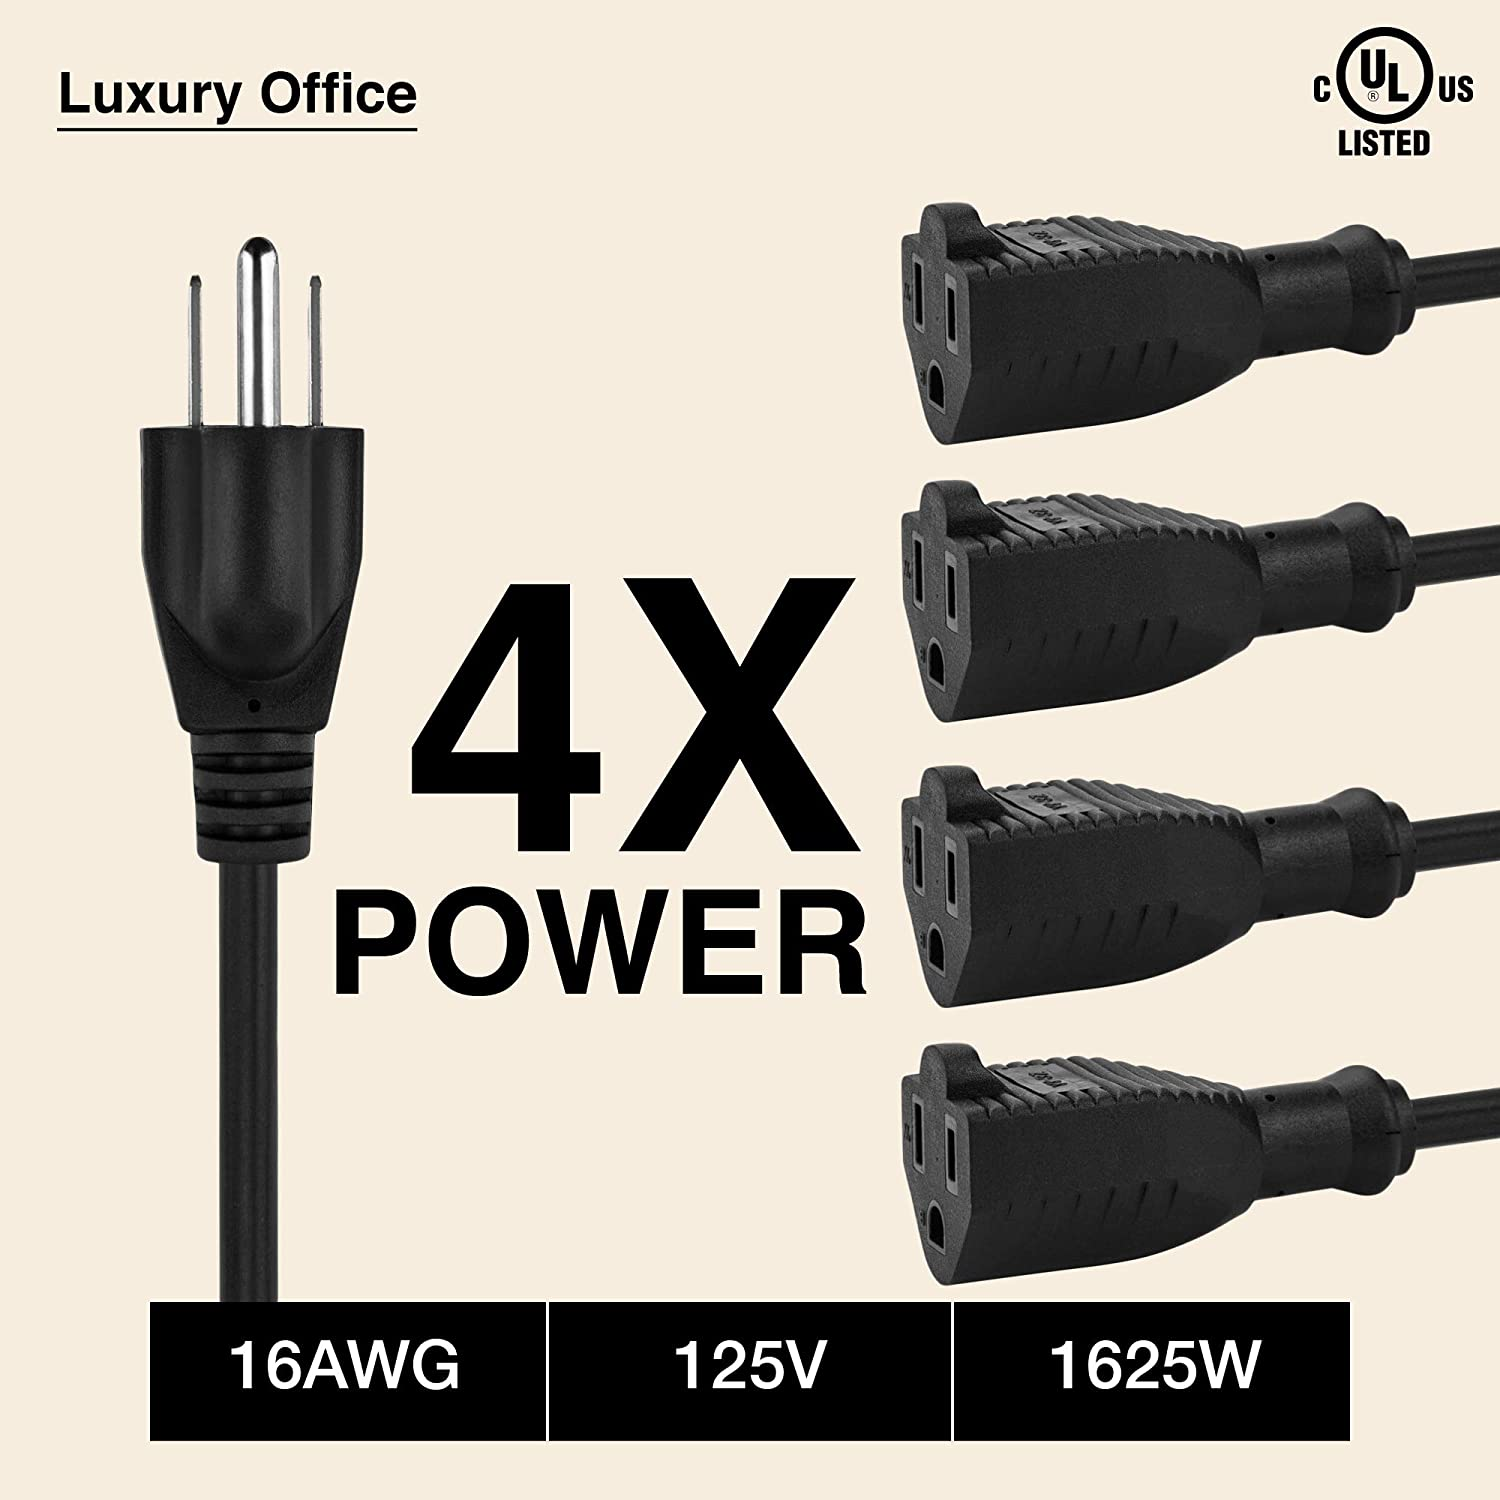 4 Way Power Splitter – 1 to 4 Cable Strip With 3 Pronged Outlet and 3